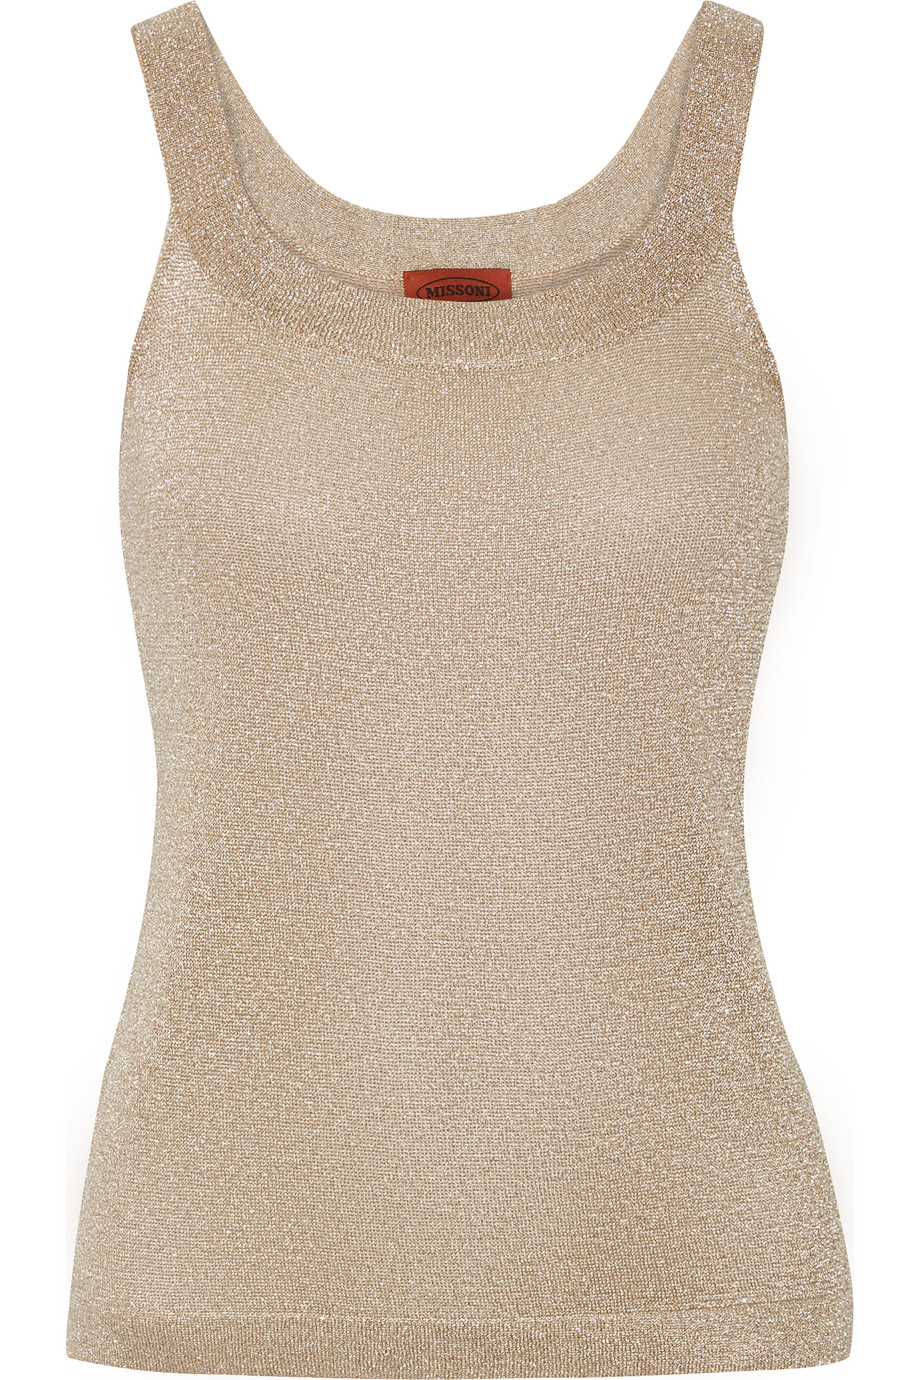 Missoni Metallic Crochet-Knit Tank, Size: 38